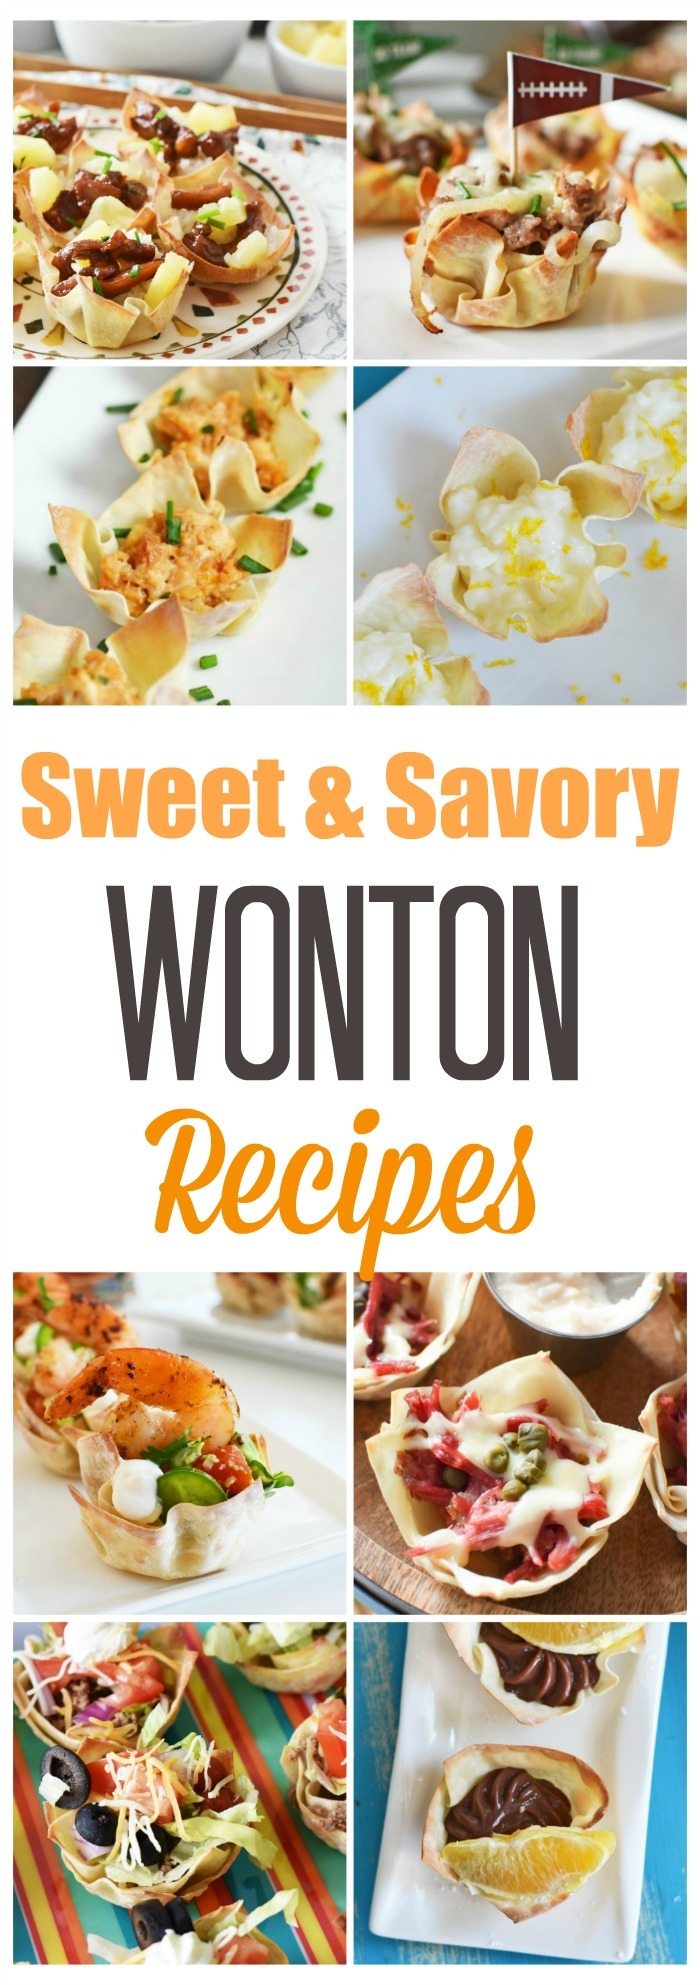 Sweet and Savory Wonton Cup Recipes